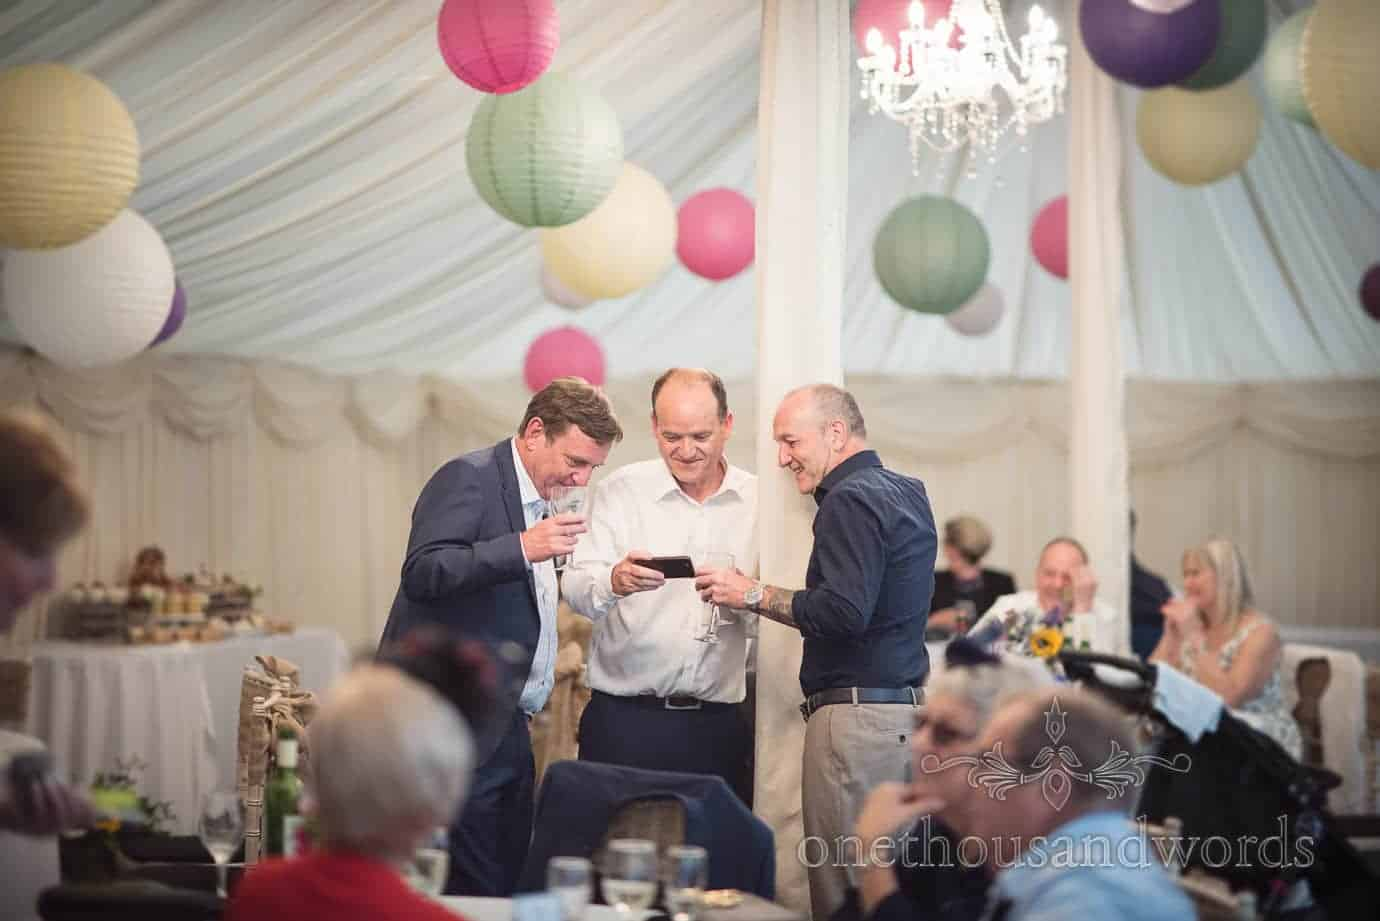 Gentleman wedding guests look at mobile phone in The Old Vicarage Wedding marquee